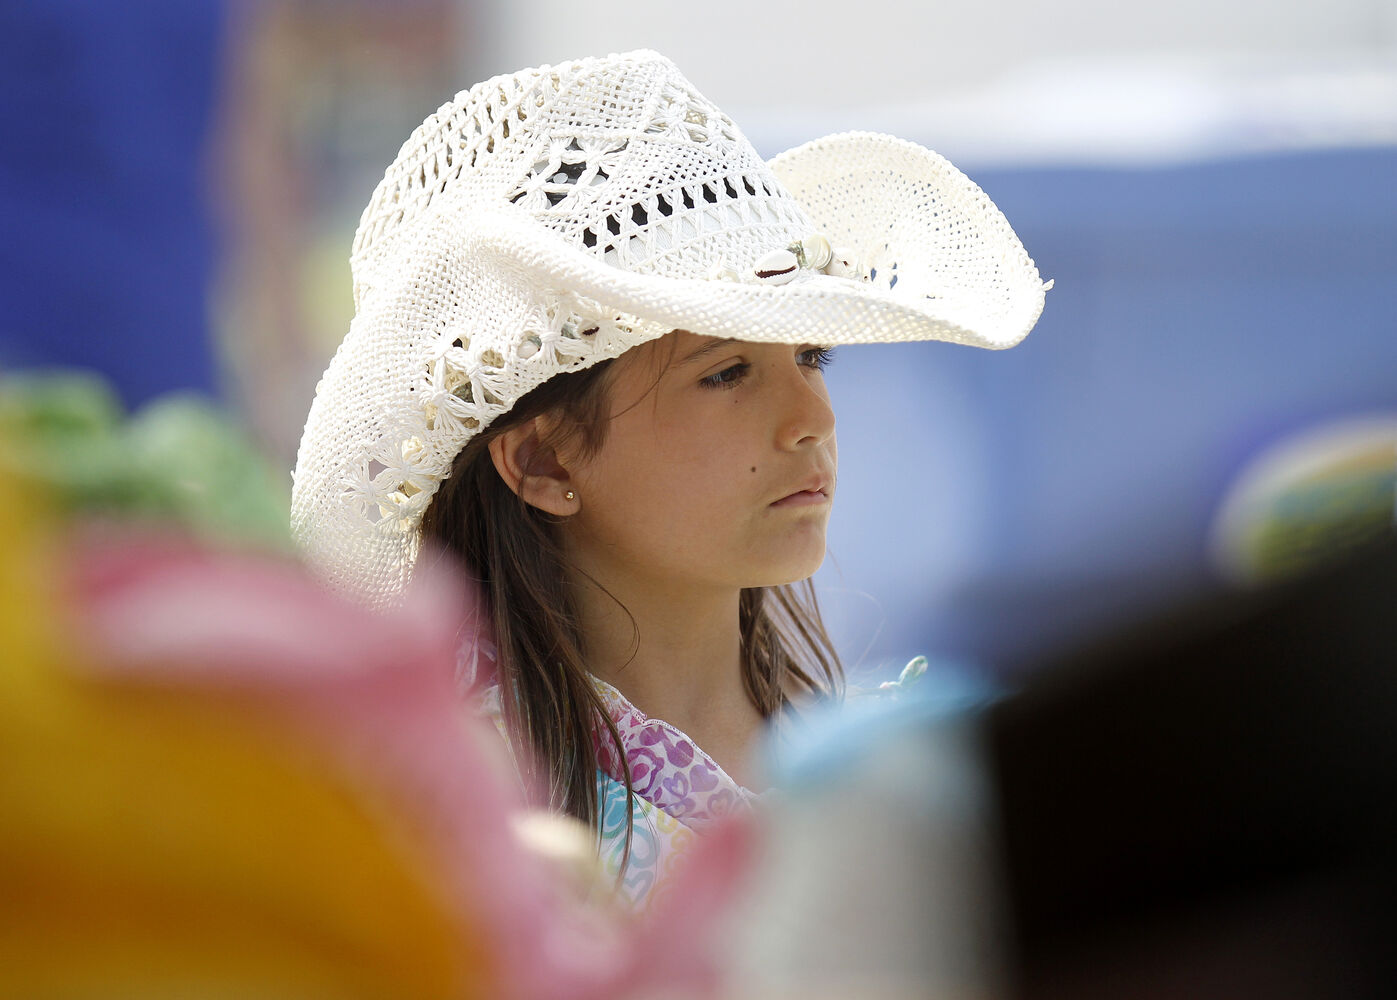 Glacier Wyryha, 6, of St. Anne, enjoys the stampede. (Trevor Hagan / Winnipeg Free Press)